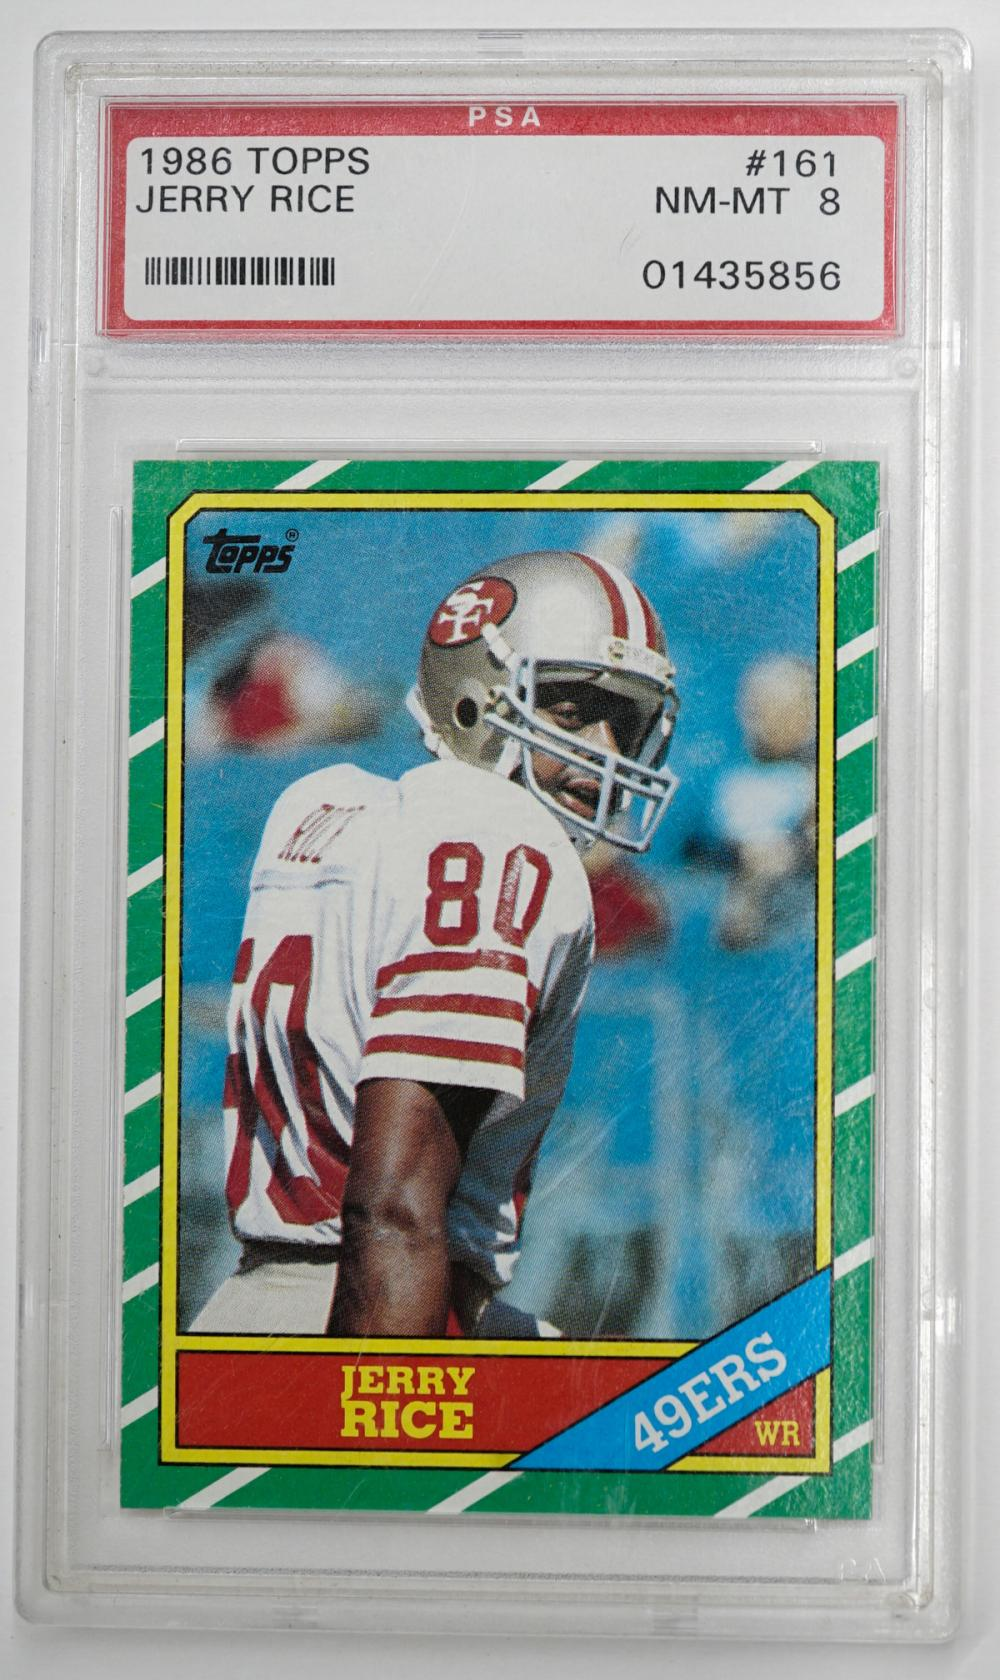 1986 Jerry Rice Topps #161 PSA NM-MT 8